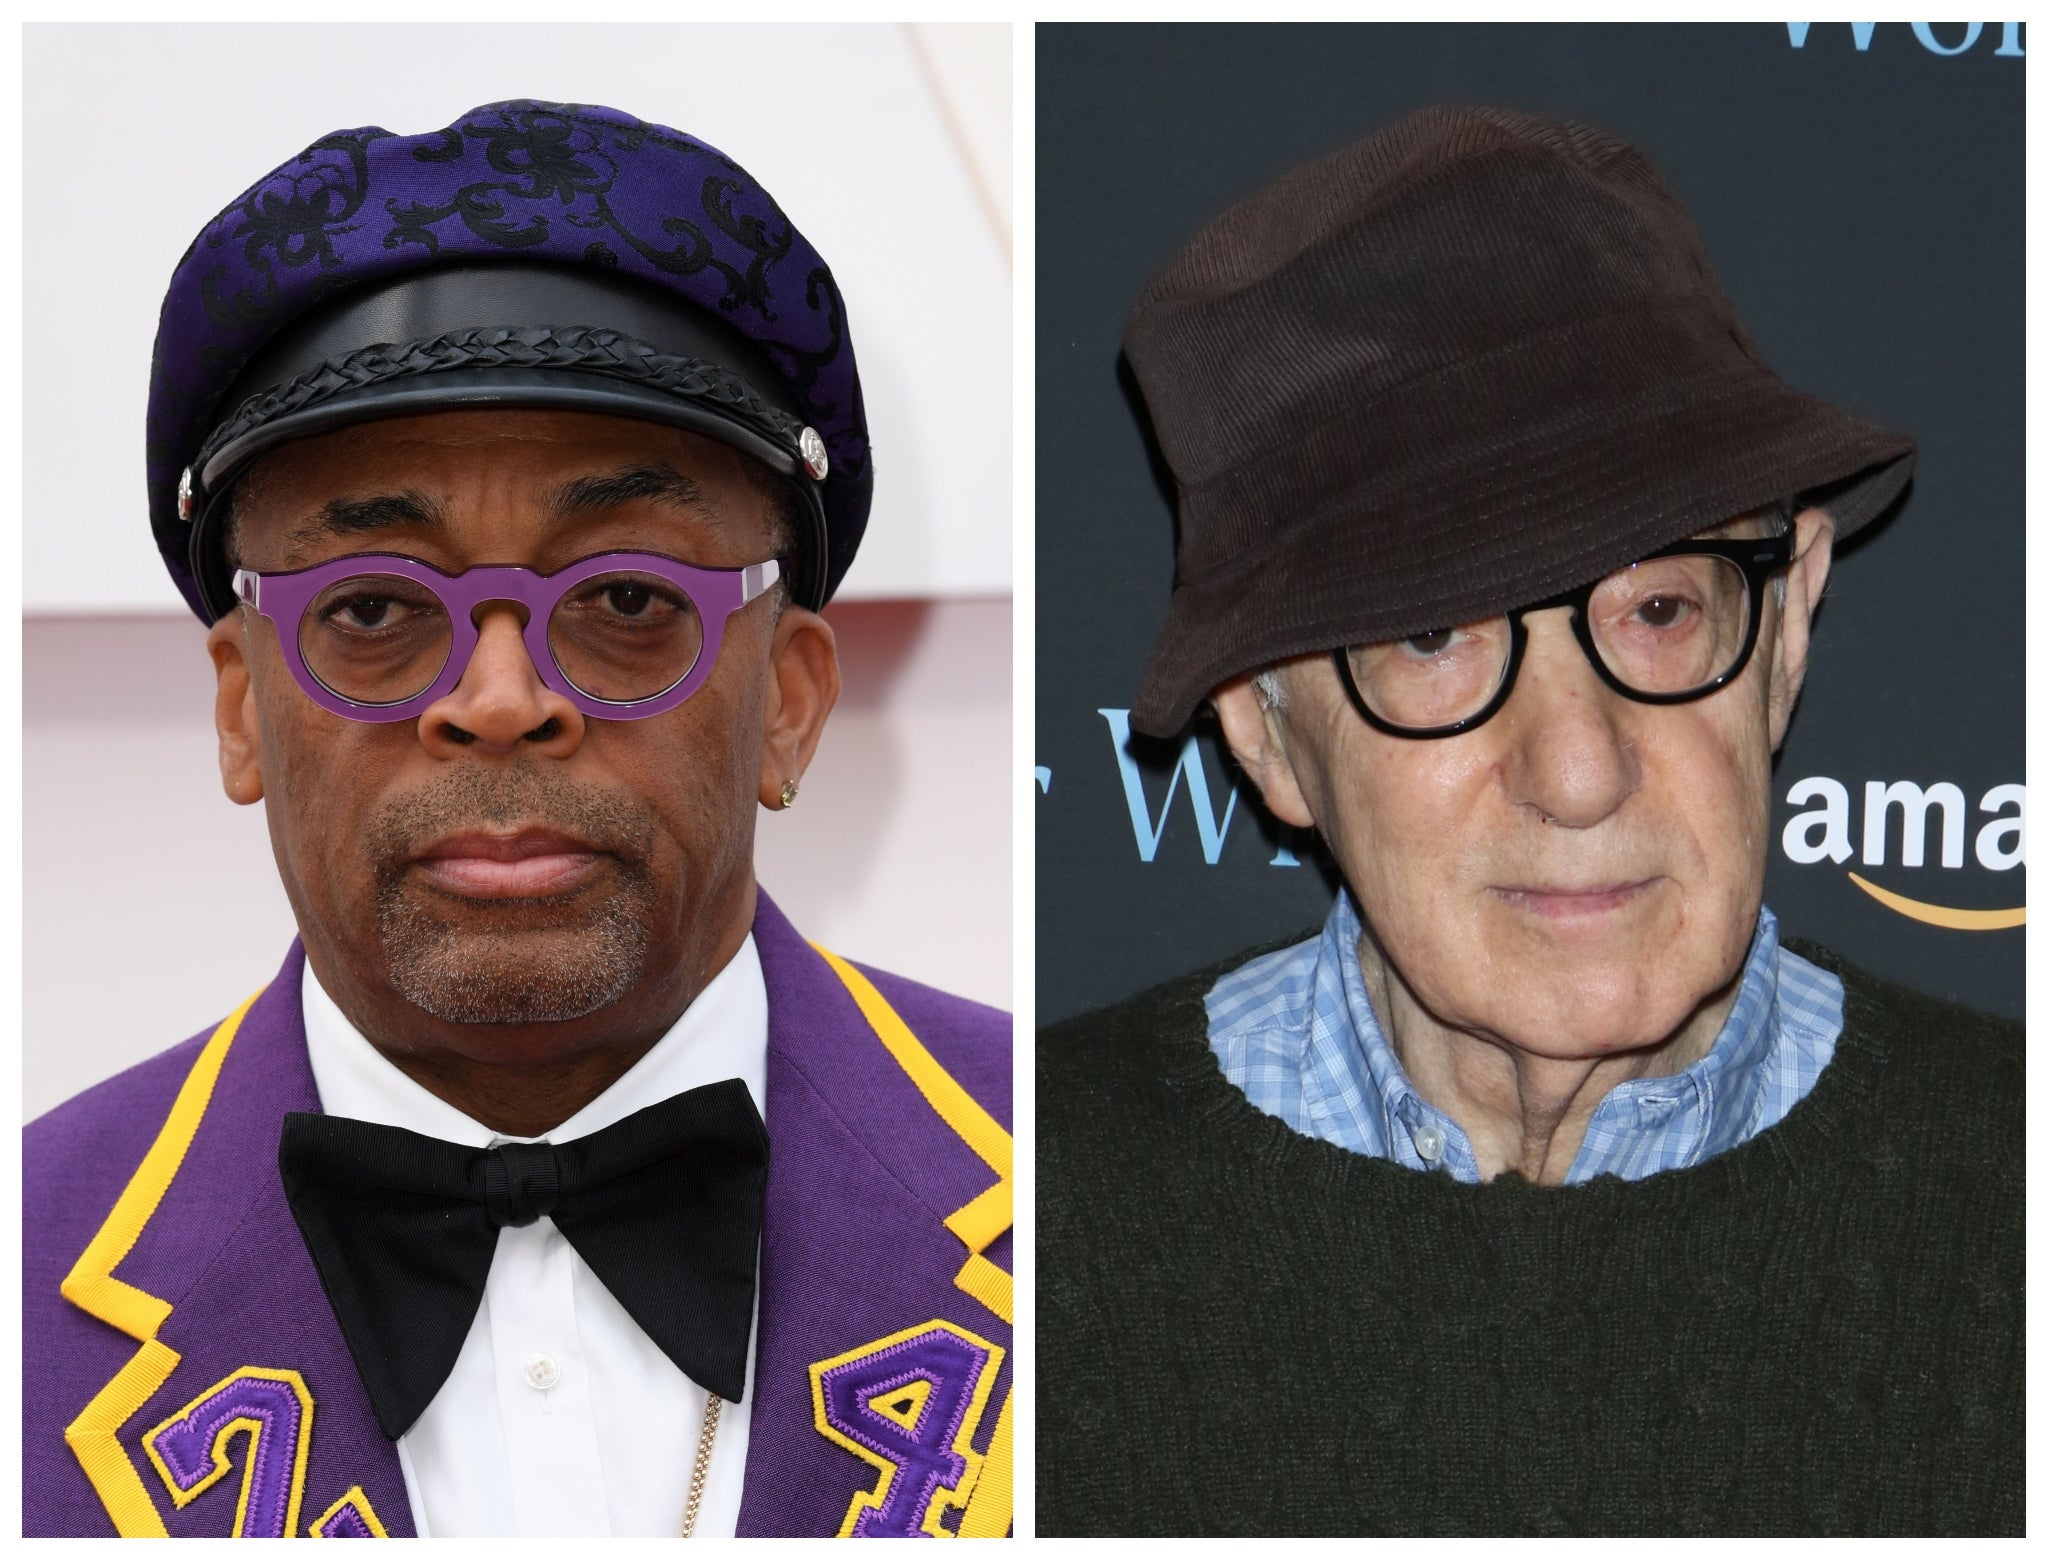 Spike Lee apologises after defending Woody Allen over sexual abuse allegations: 'My words were wrong' - The Independent